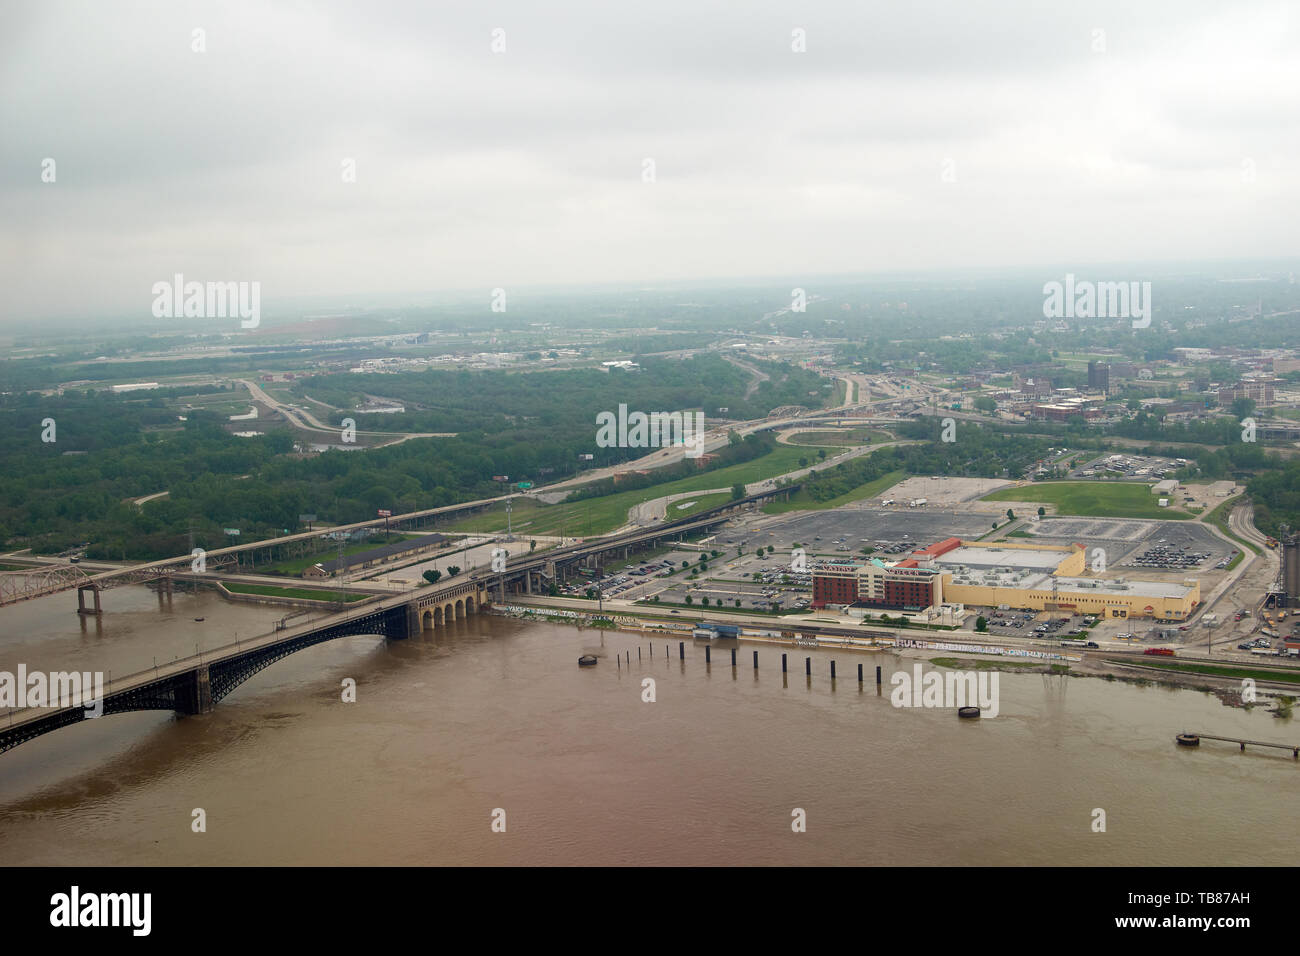 St  Louis, USA - May 3, 2019: Flooded Mississippi River in St  Louis